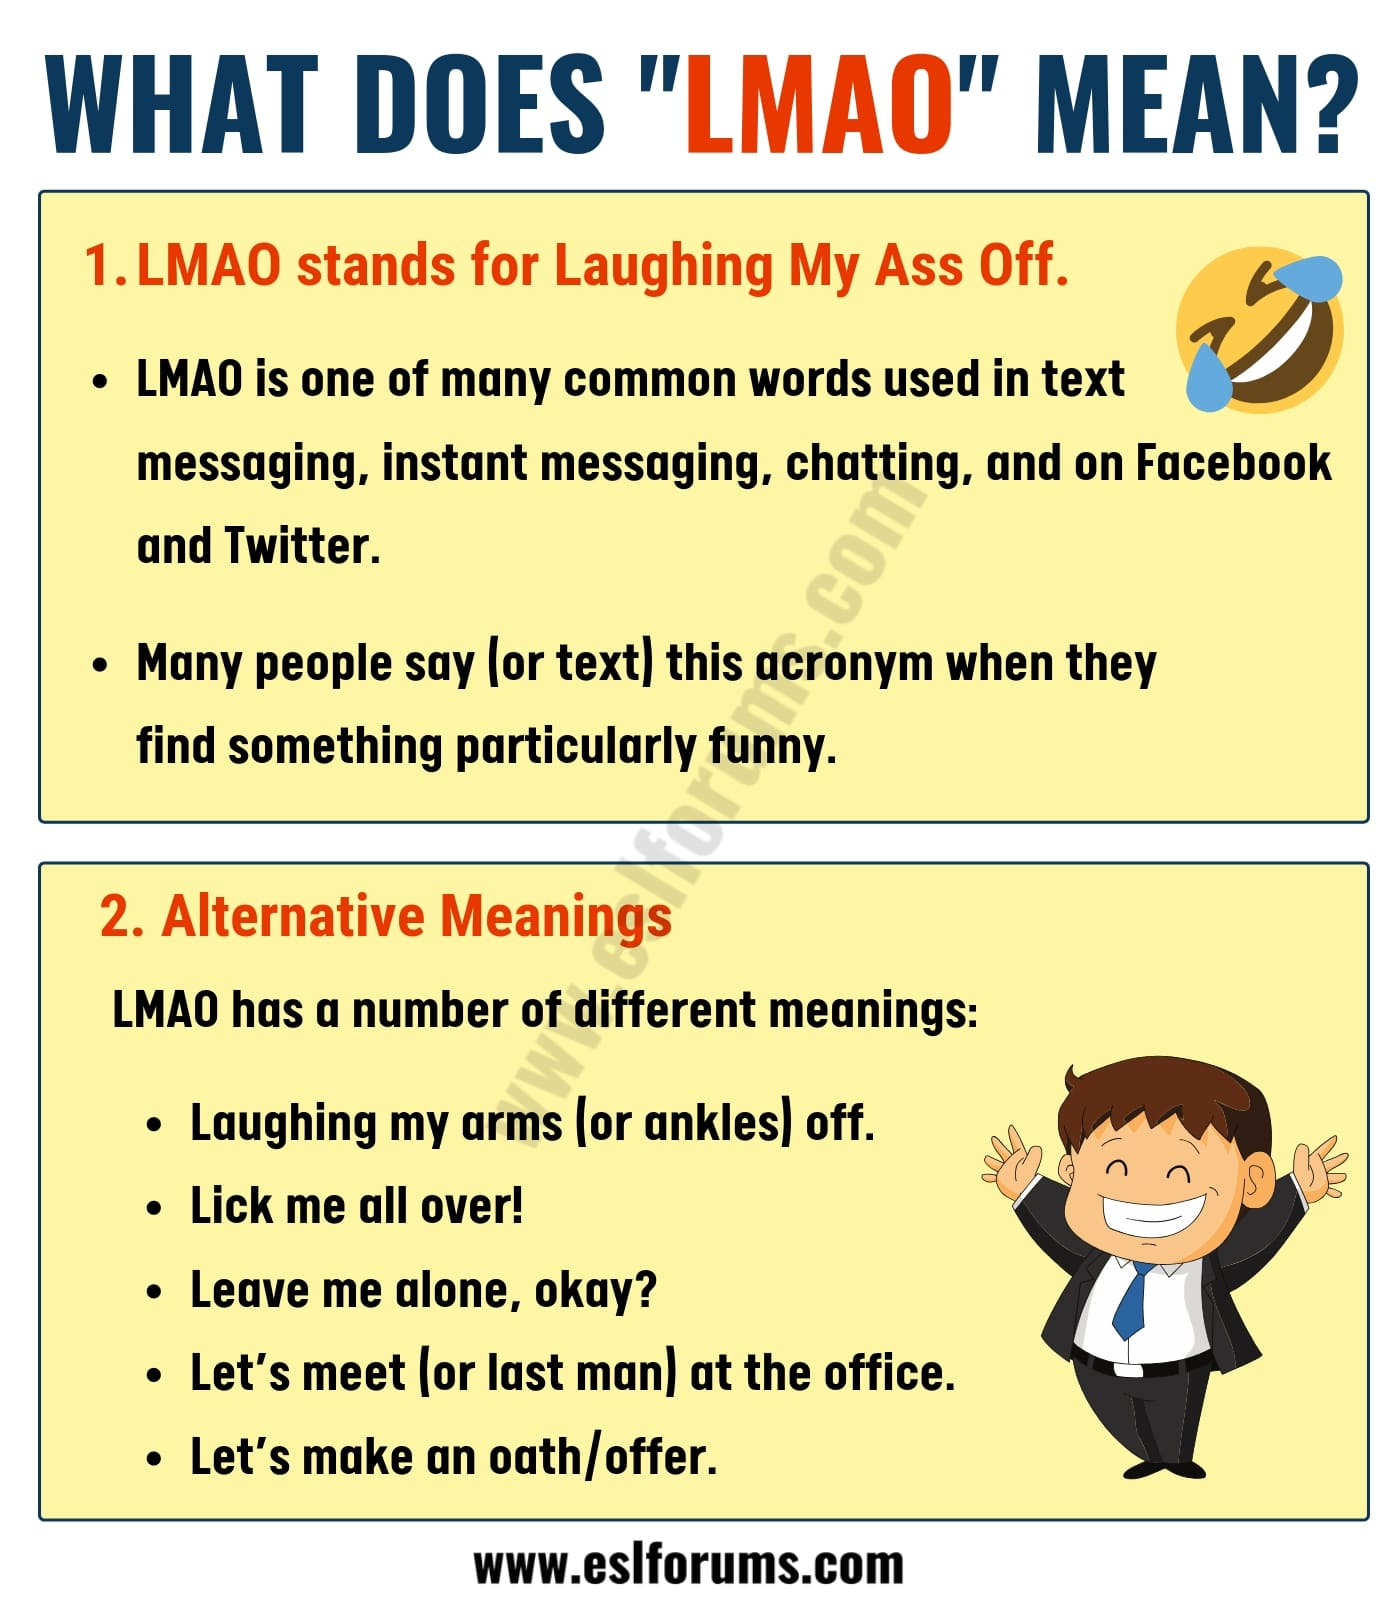 What Does LMAO Mean in Texting? ROFL, BFF, IMO & More...!